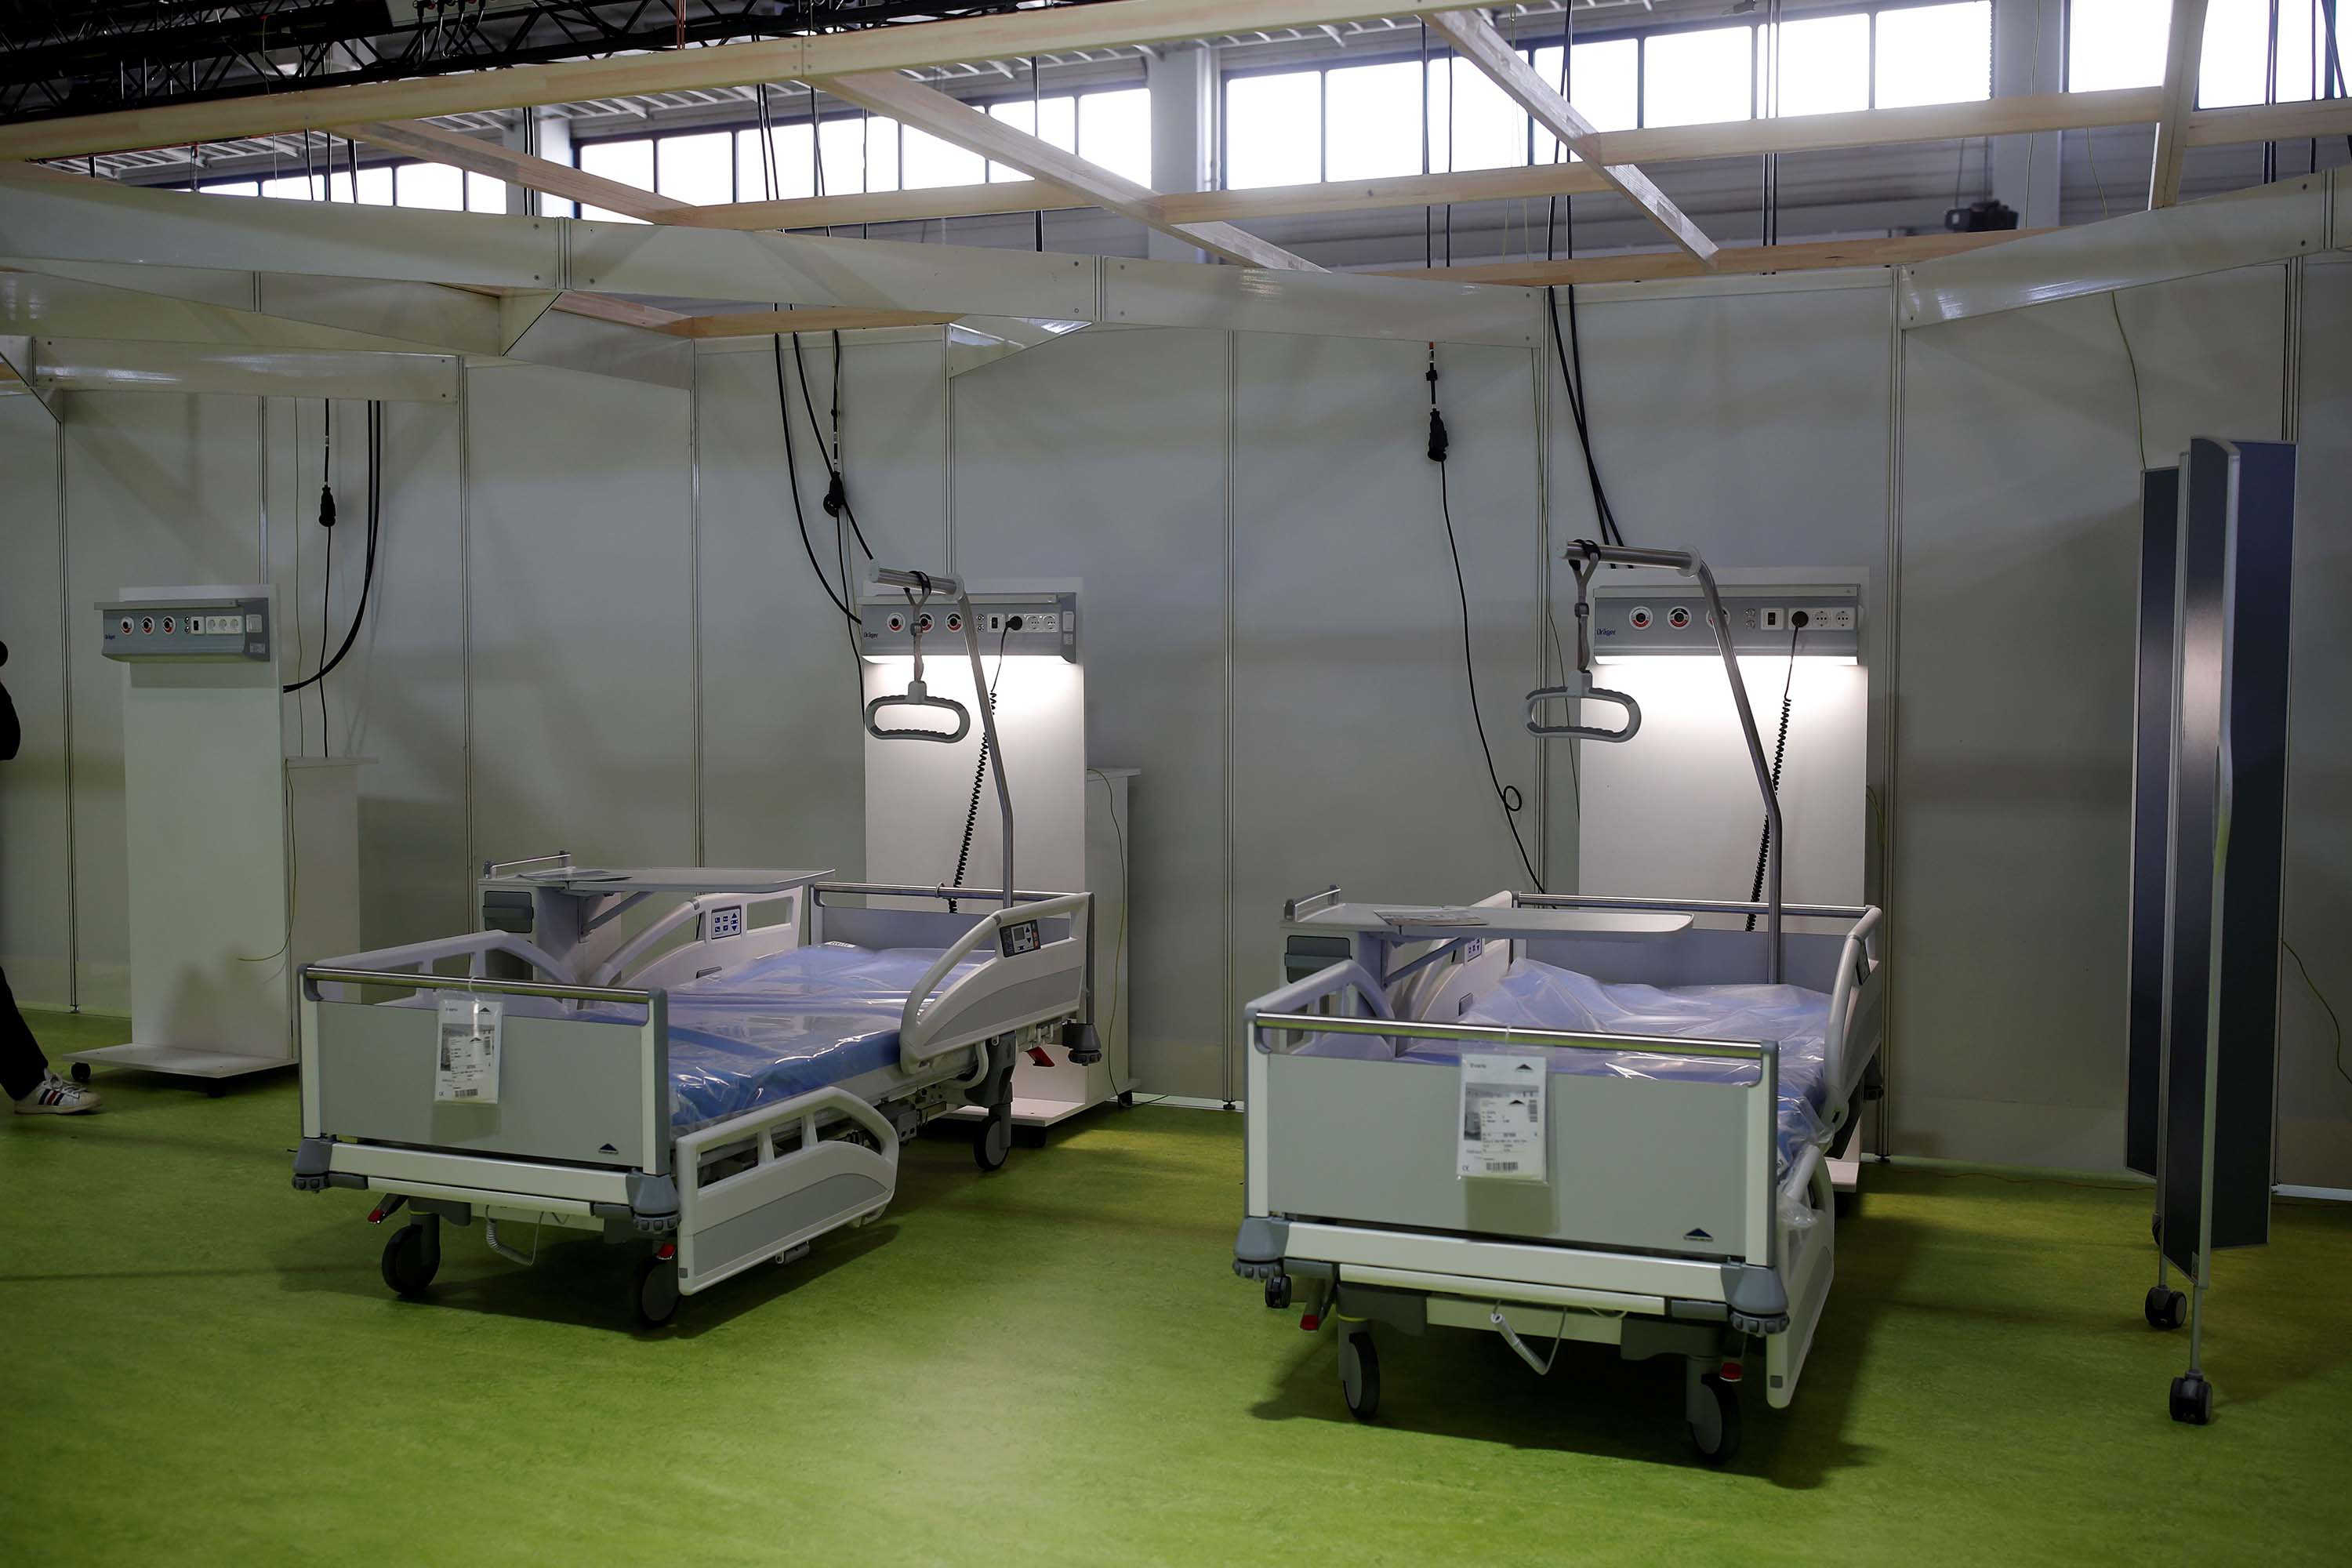 A makeshift hospital to treat coronavirus patients is prepared at the fairgrounds in Berlin, Germany, on April 23.